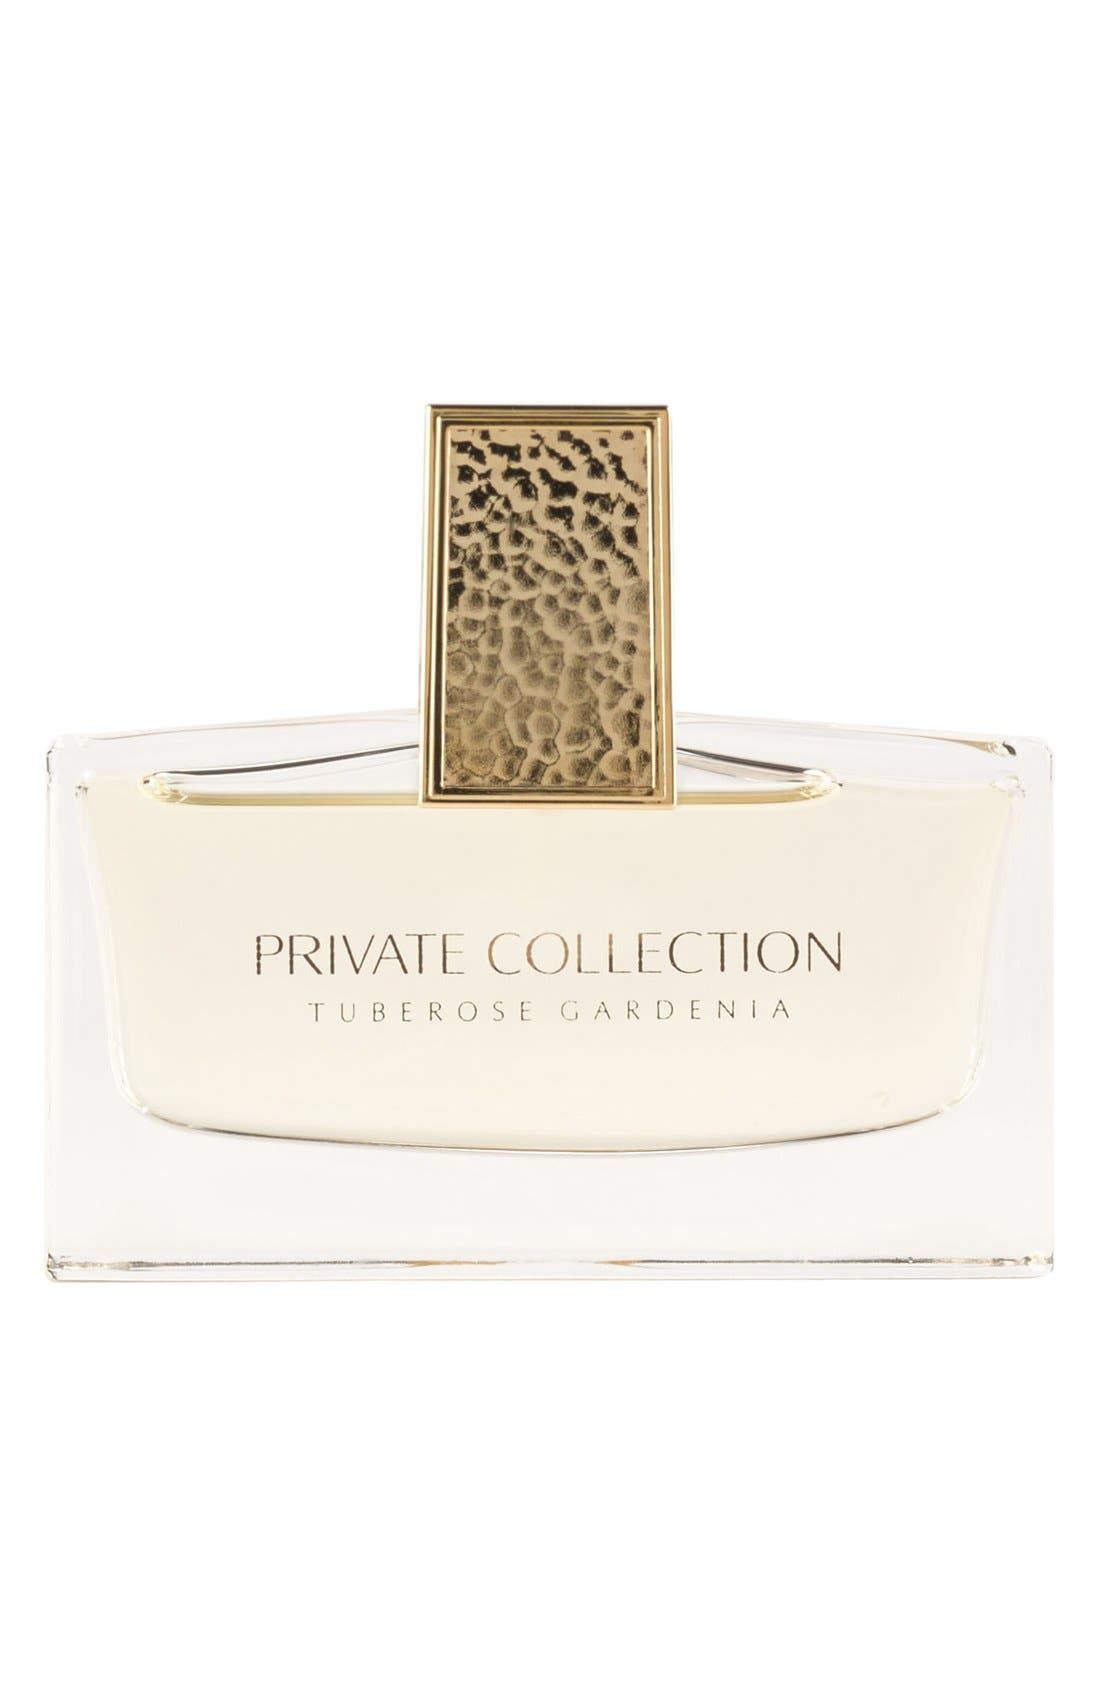 Private Collection Tuberose Gardenia Eau de Parfum Spray,                             Main thumbnail 1, color,                             NO COLOR